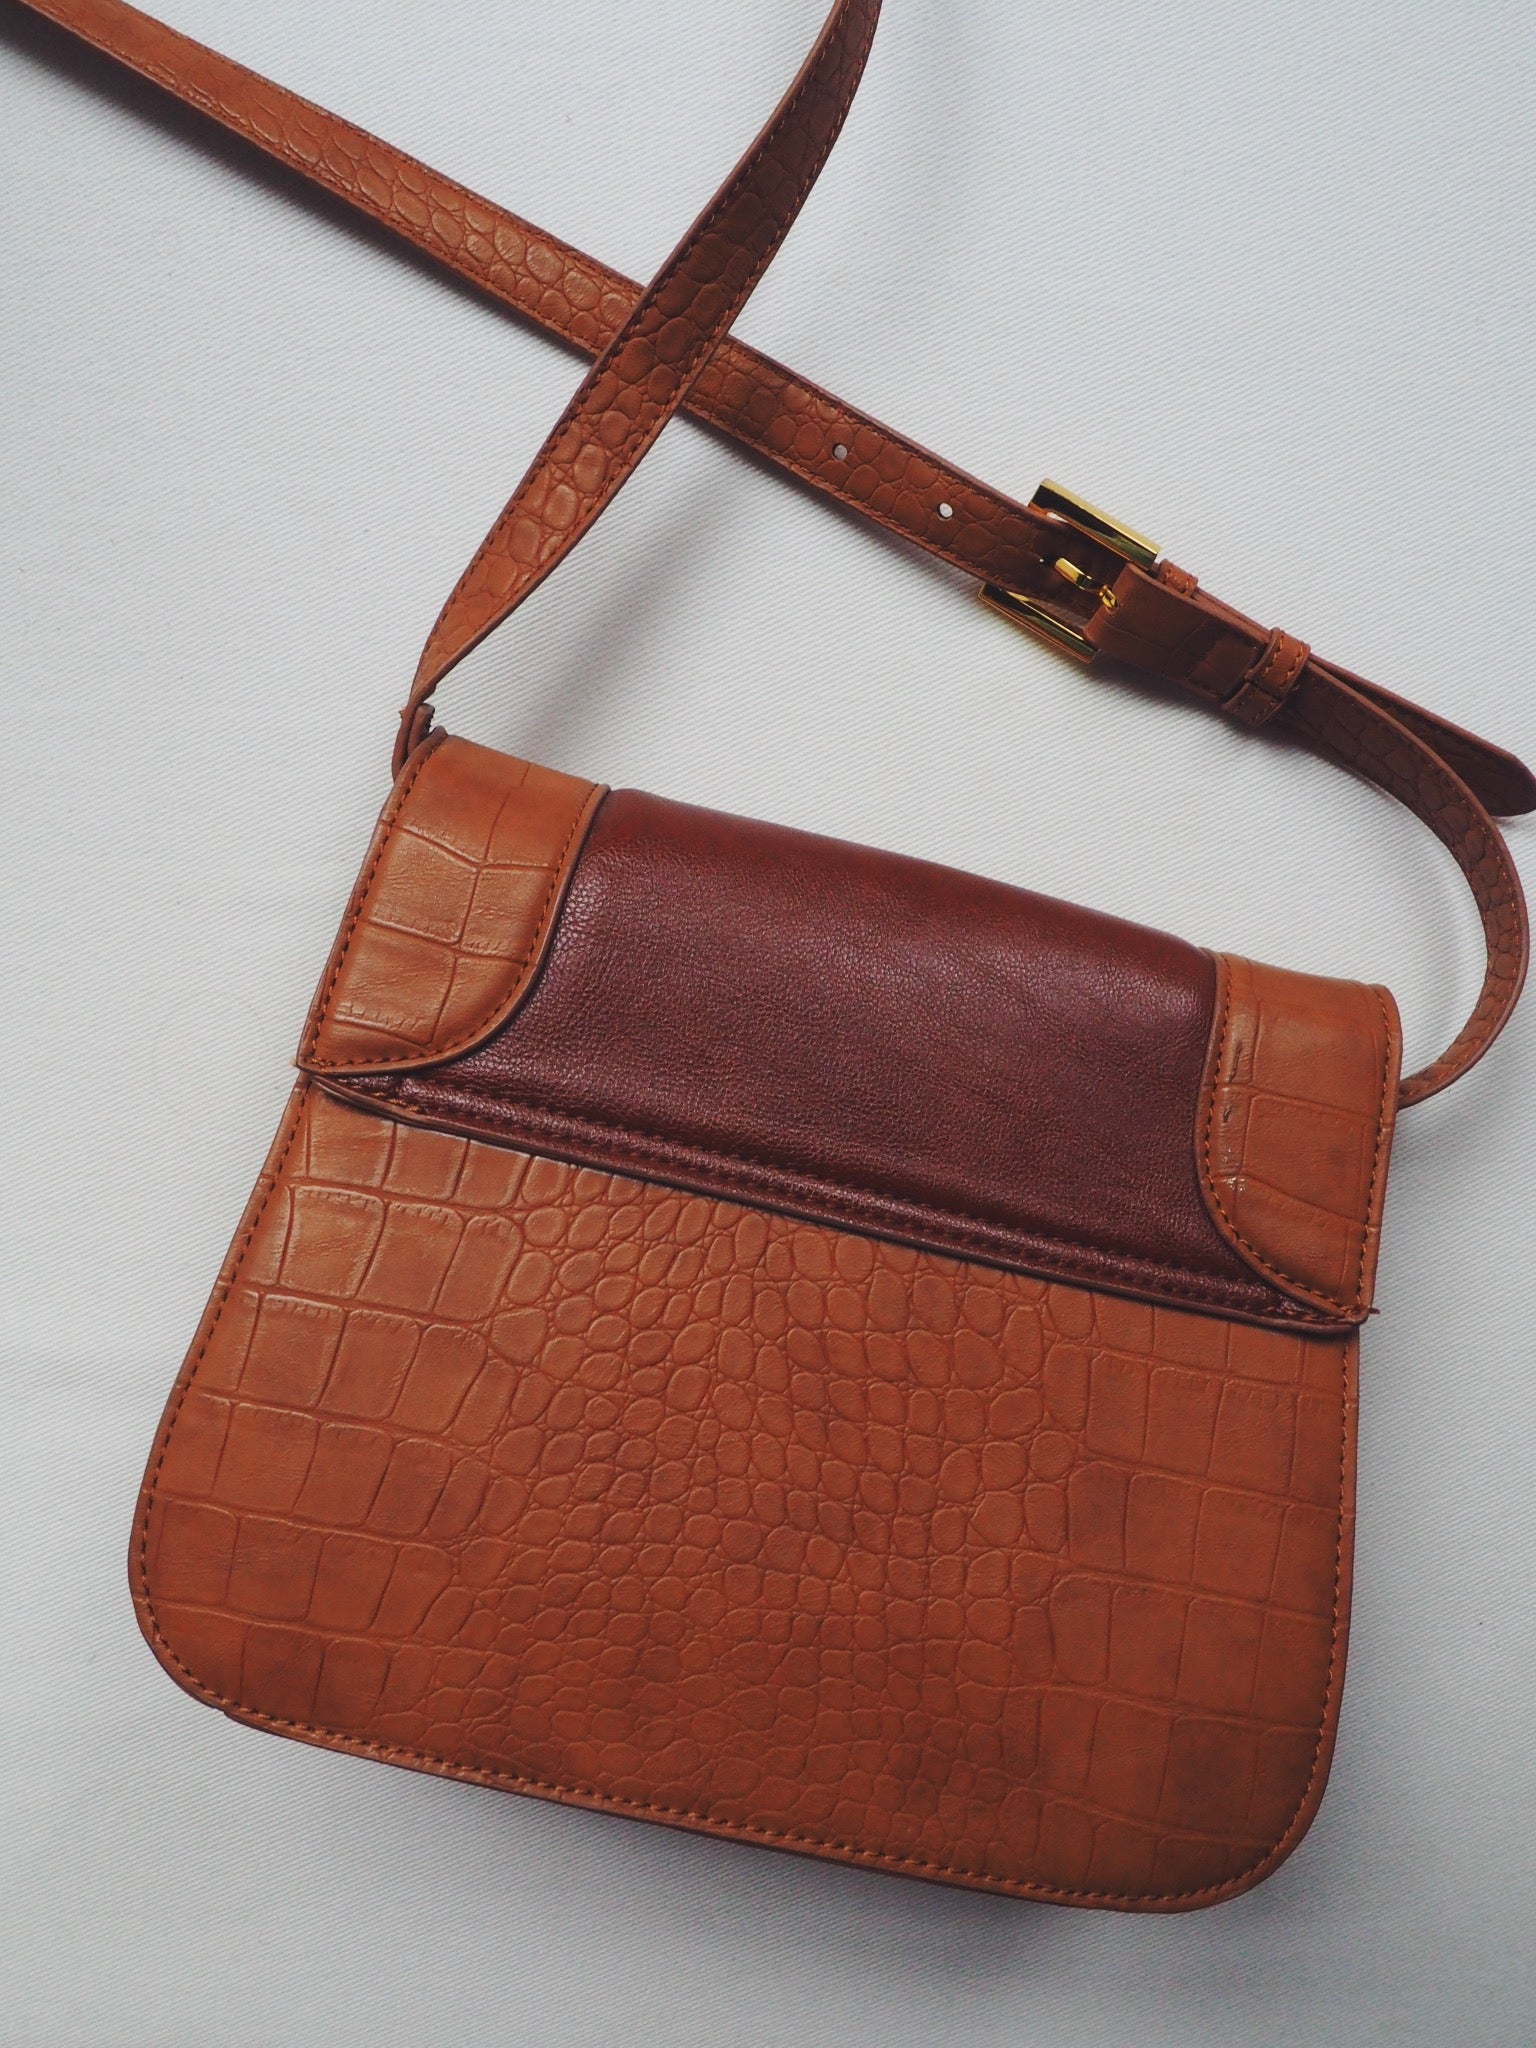 Two-Toned Purse